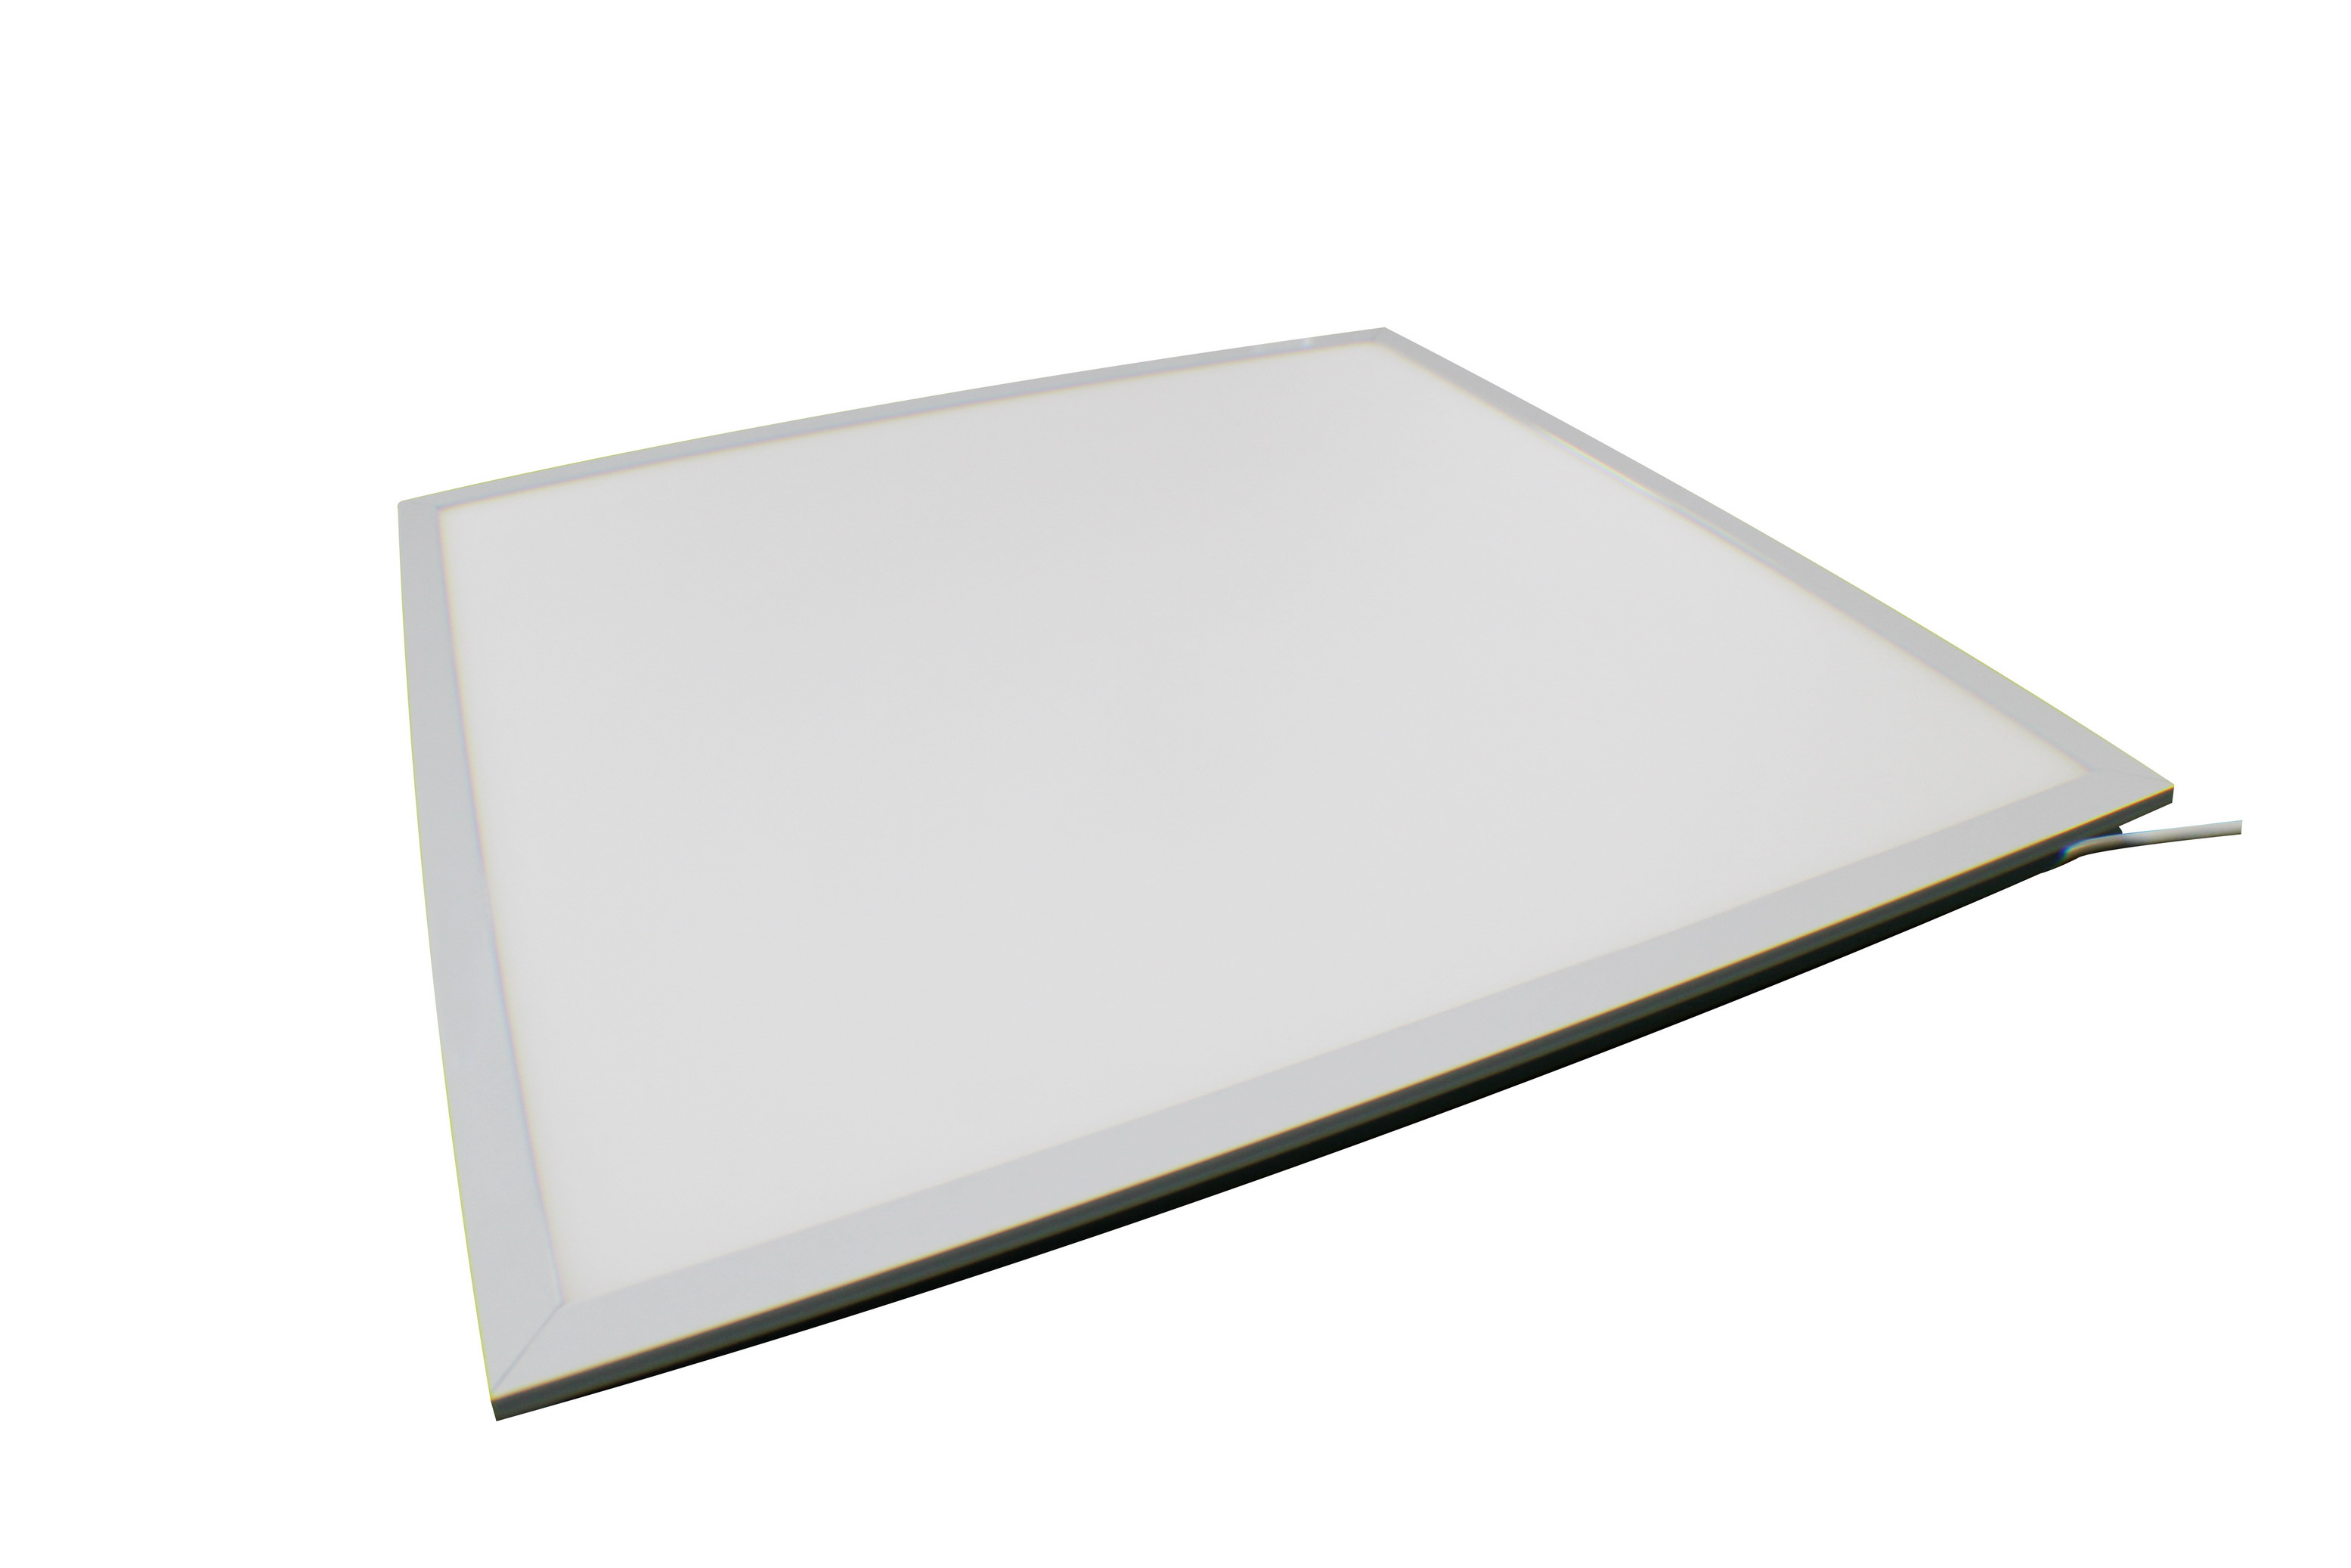 60 x 60 cm Office LED Panel Light 36w commercial lighting products